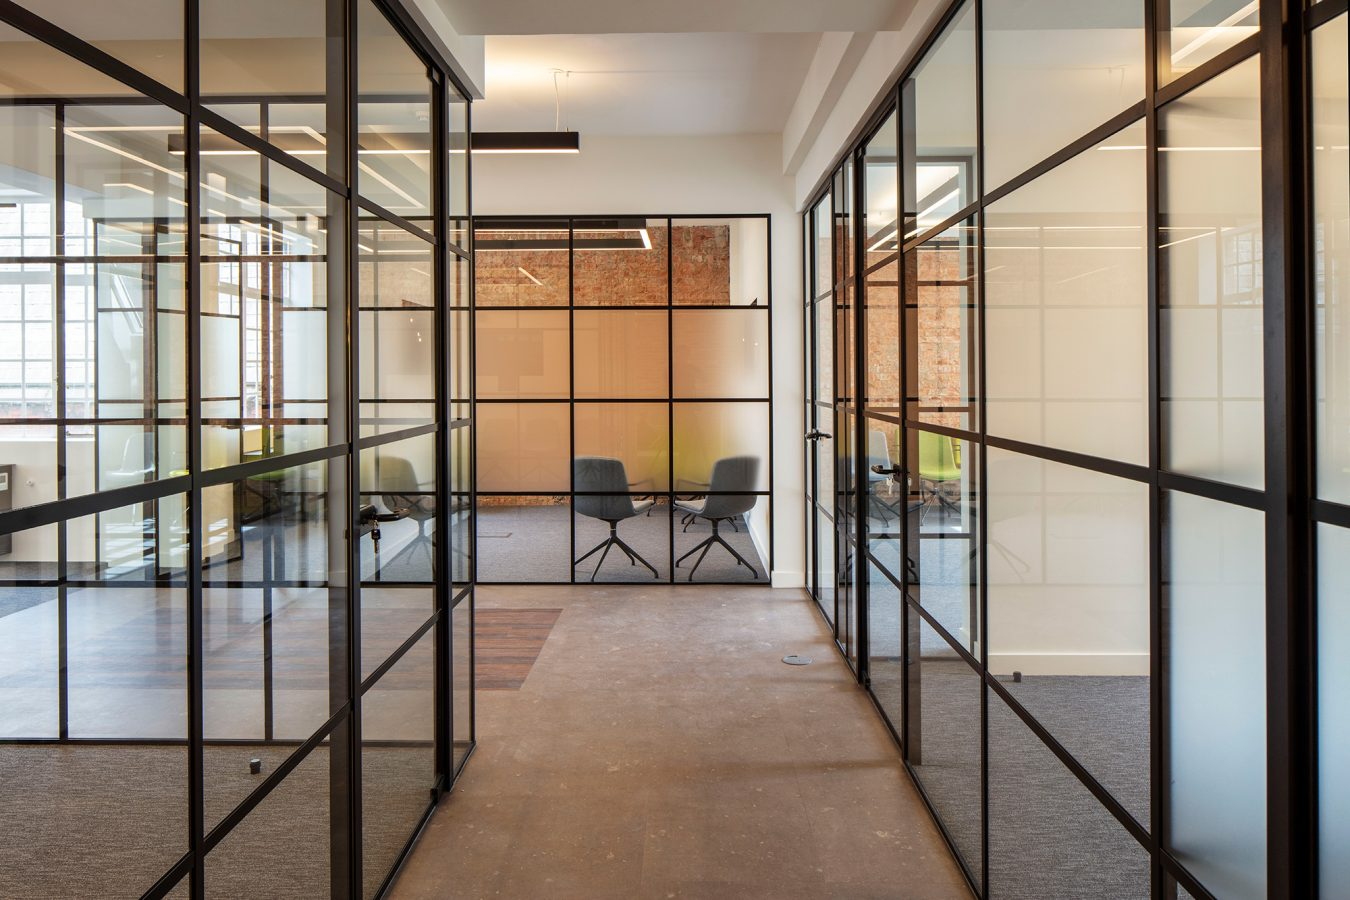 Partitions made of glazed window and doors in a office space